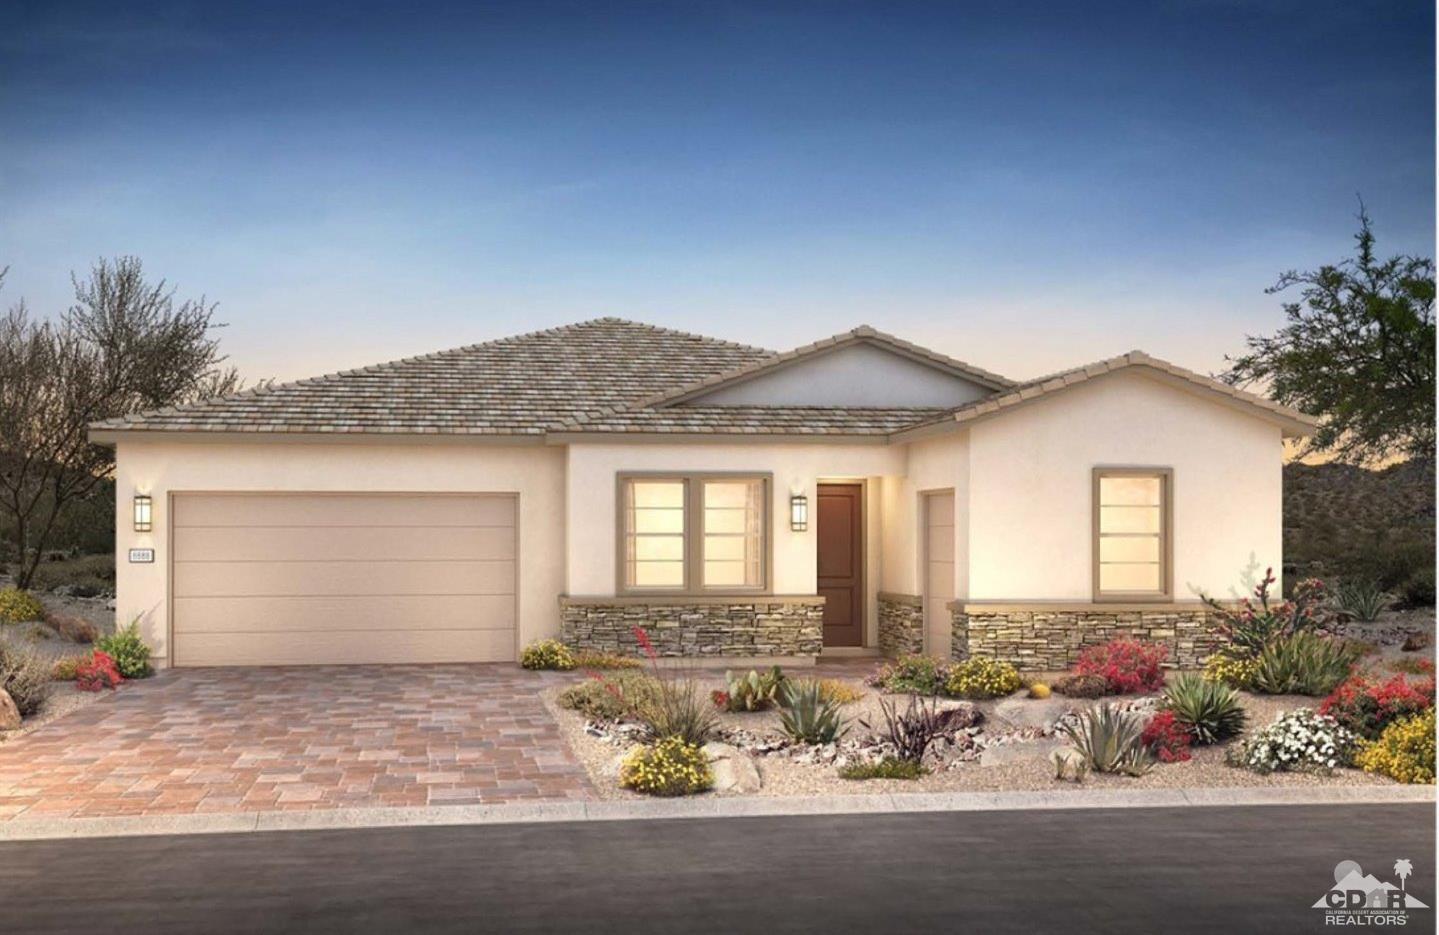 Photo of 50795 Harps Canyon (Lot 5050) Drive, Indio, CA 92201